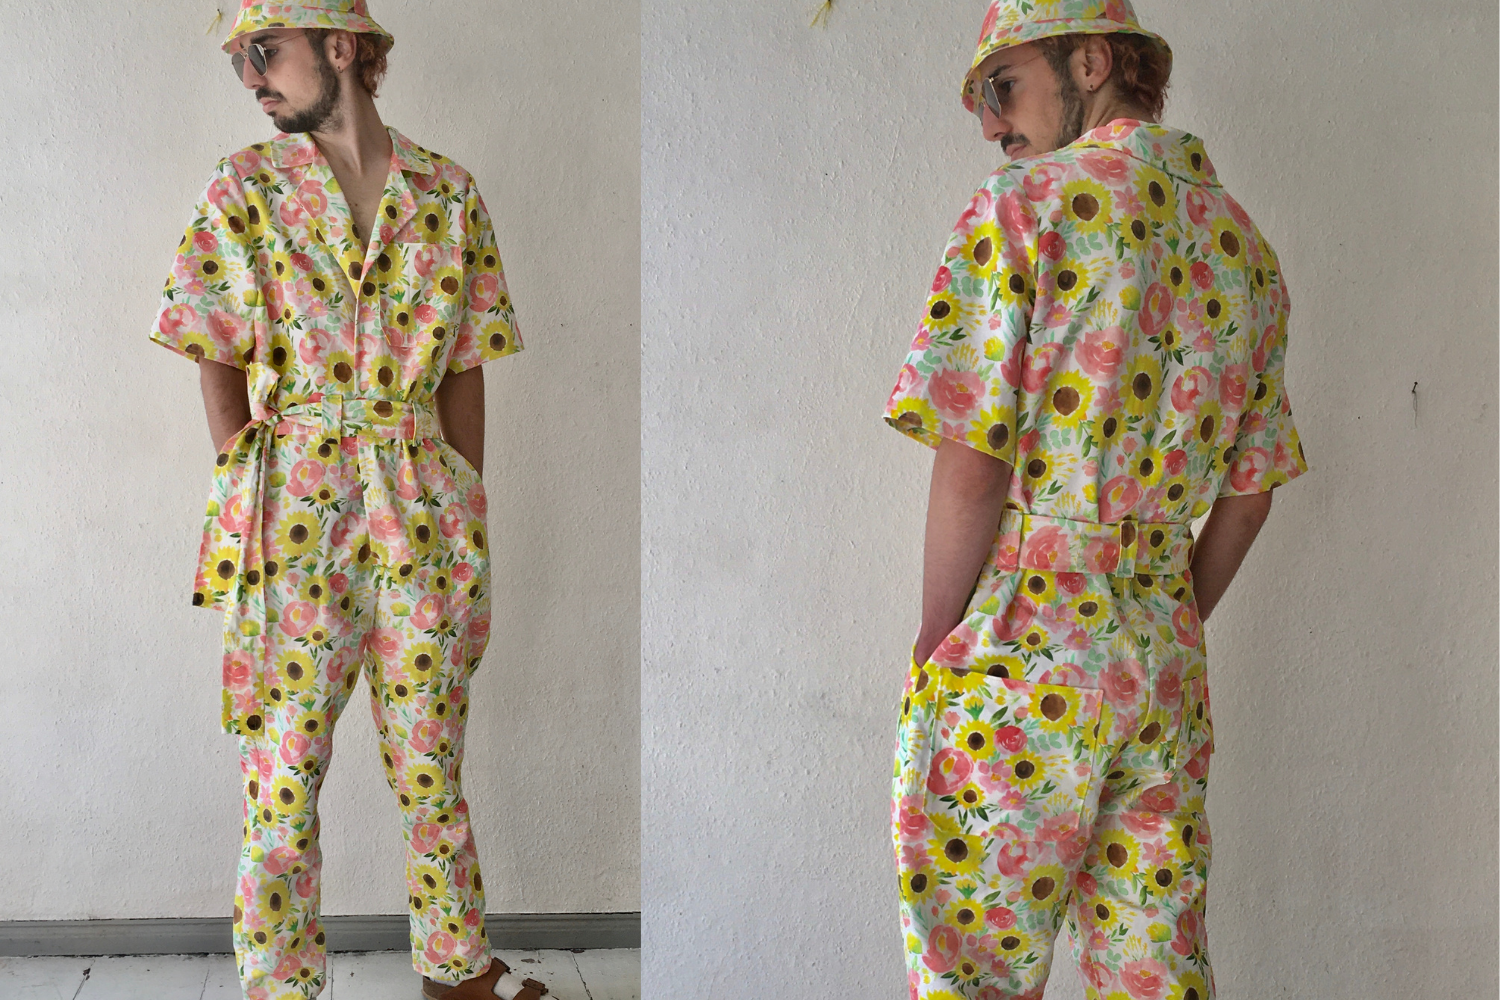 Model wearing bright yellow floral jumpsuit with matching hat